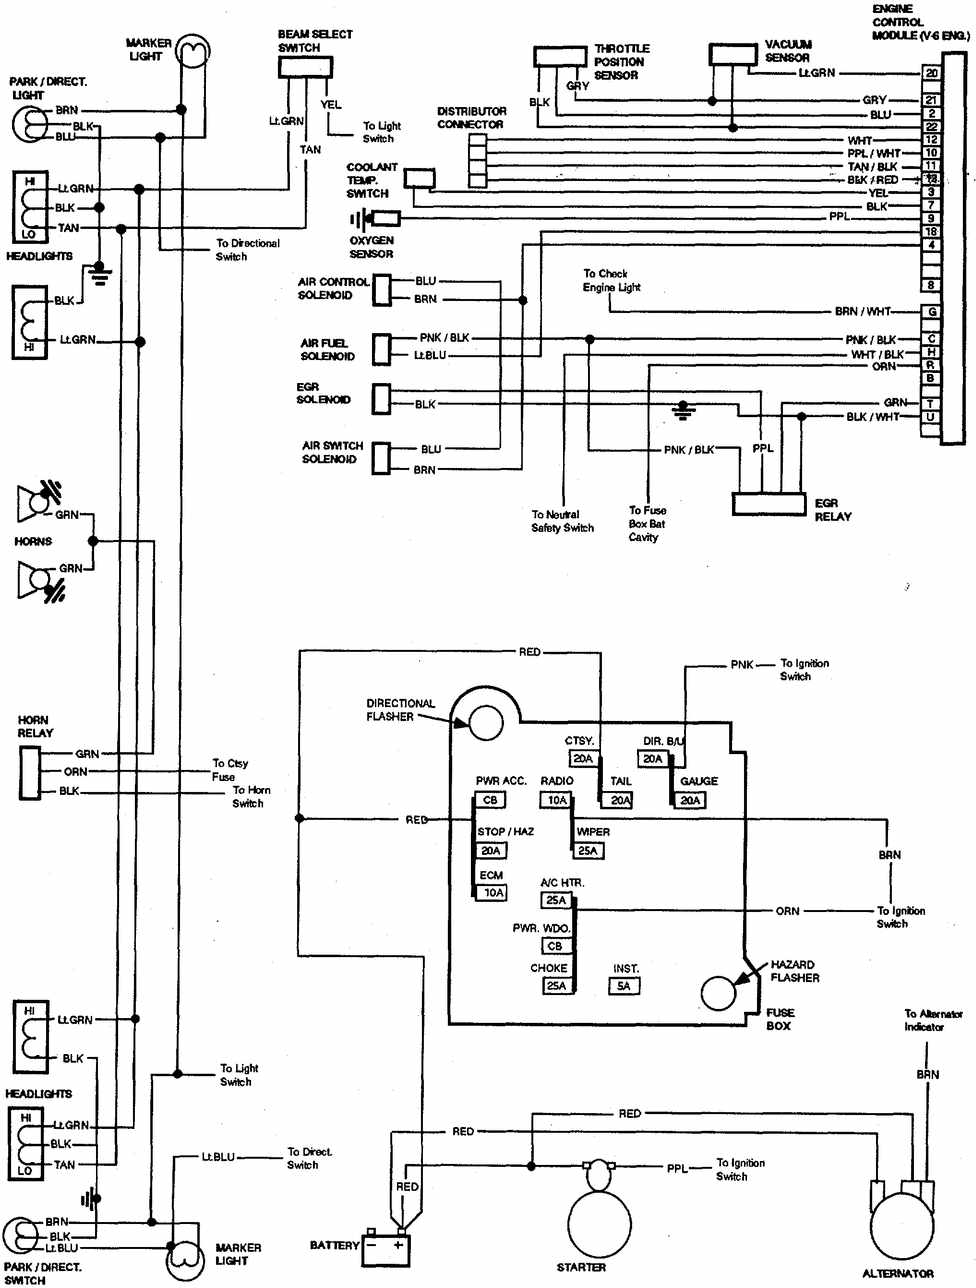 1986 s10 wiring harness diagram